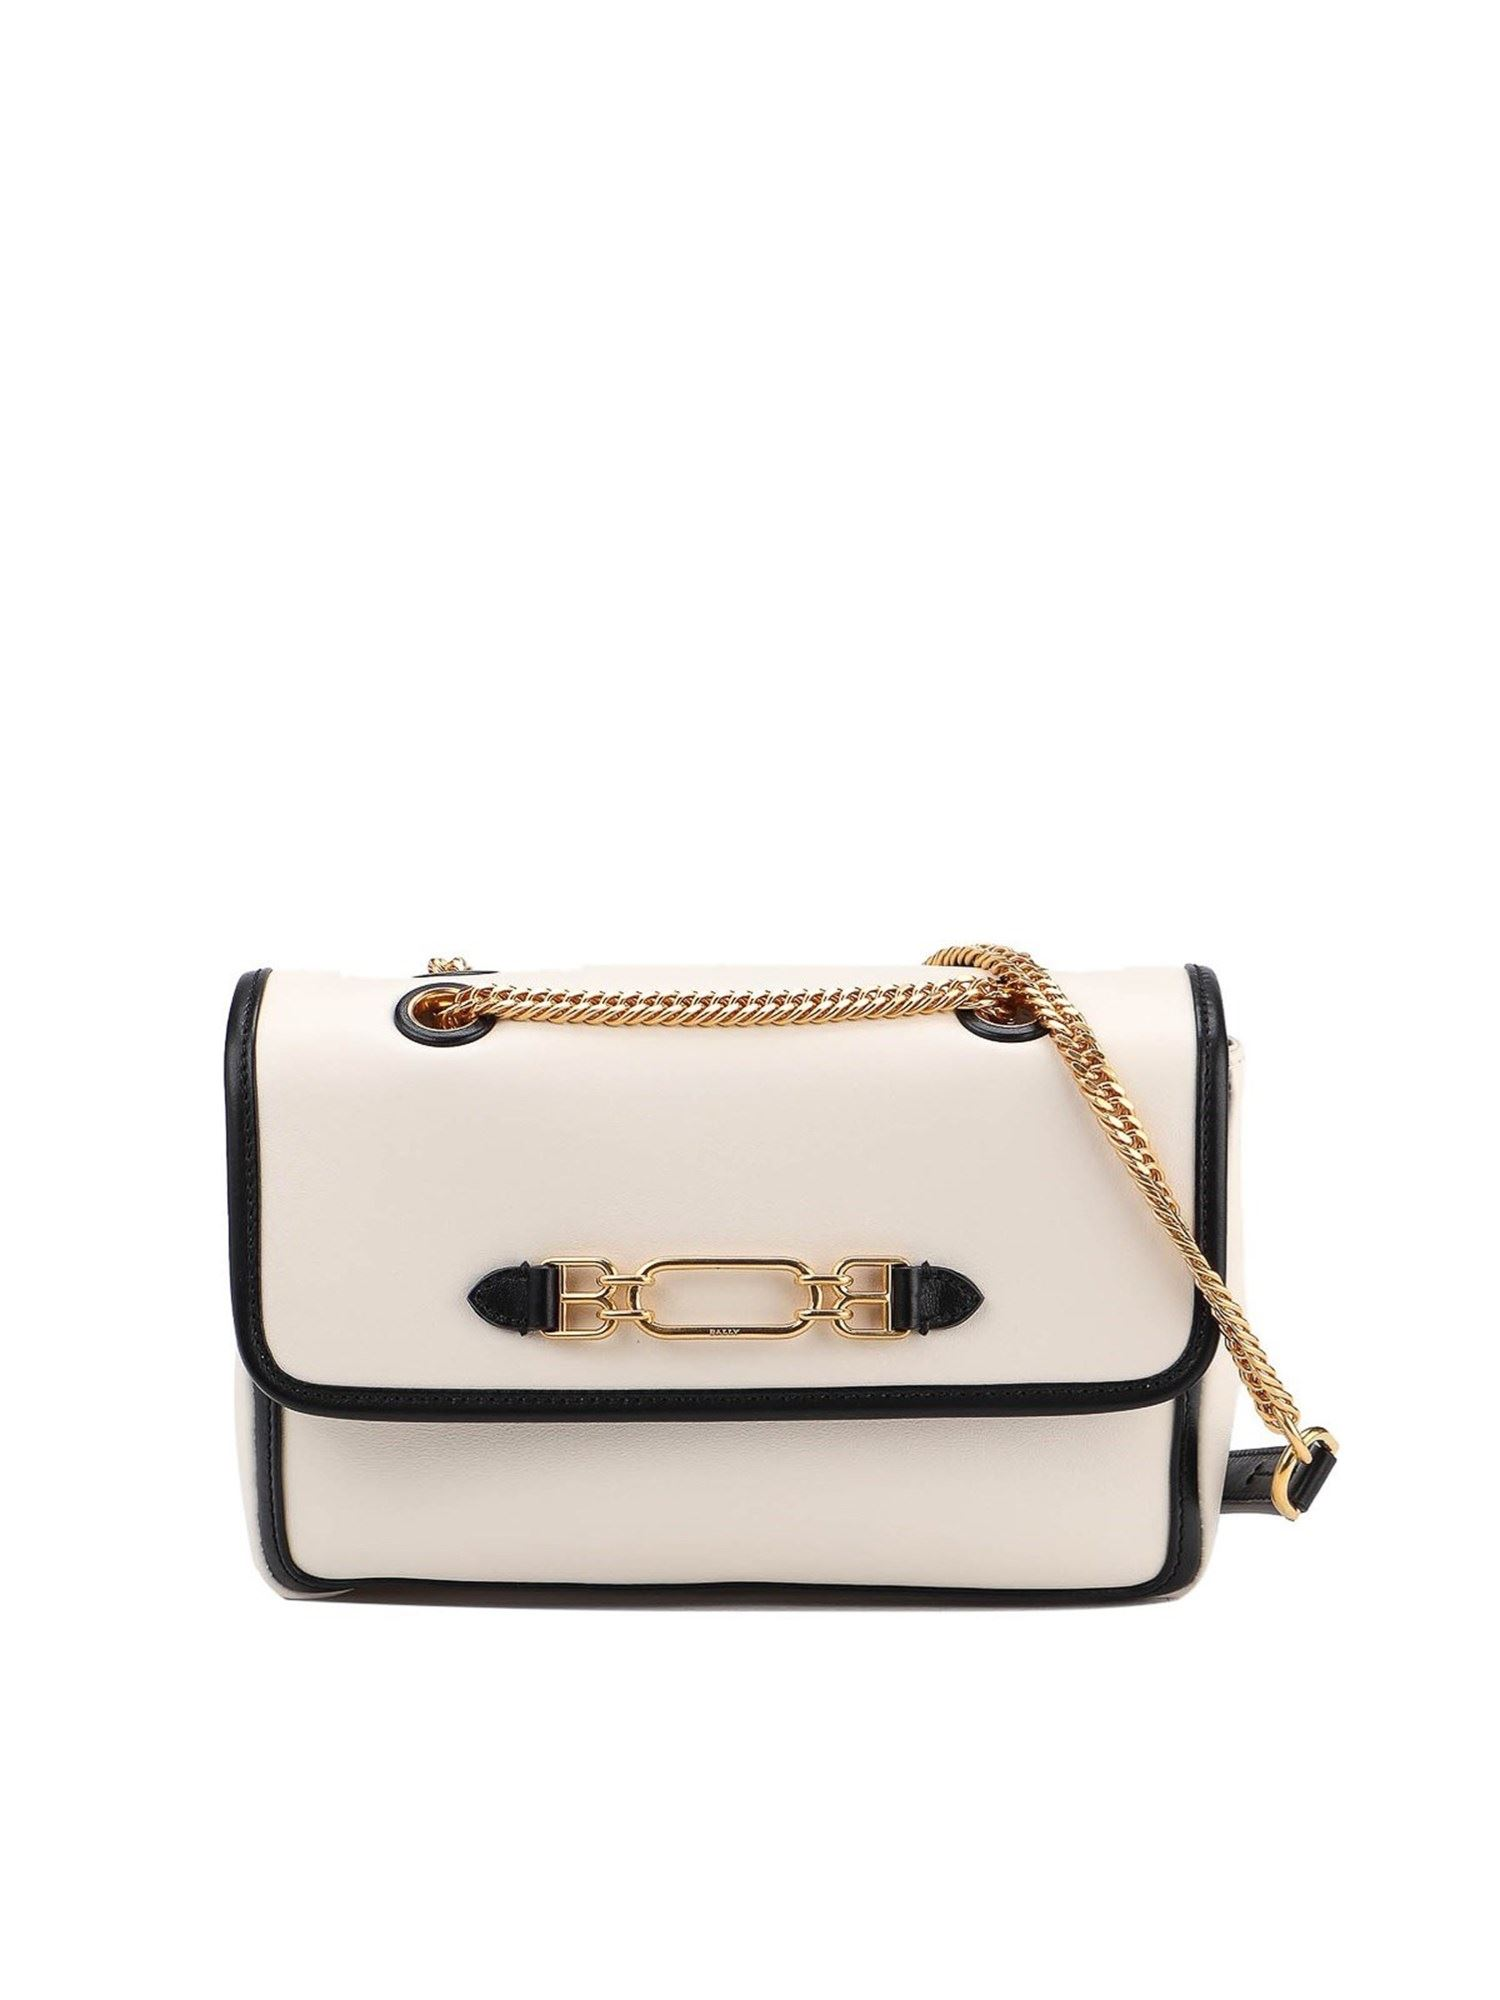 Bally VIVA SMALL SHOULDER BAG IN CREAM COLOR